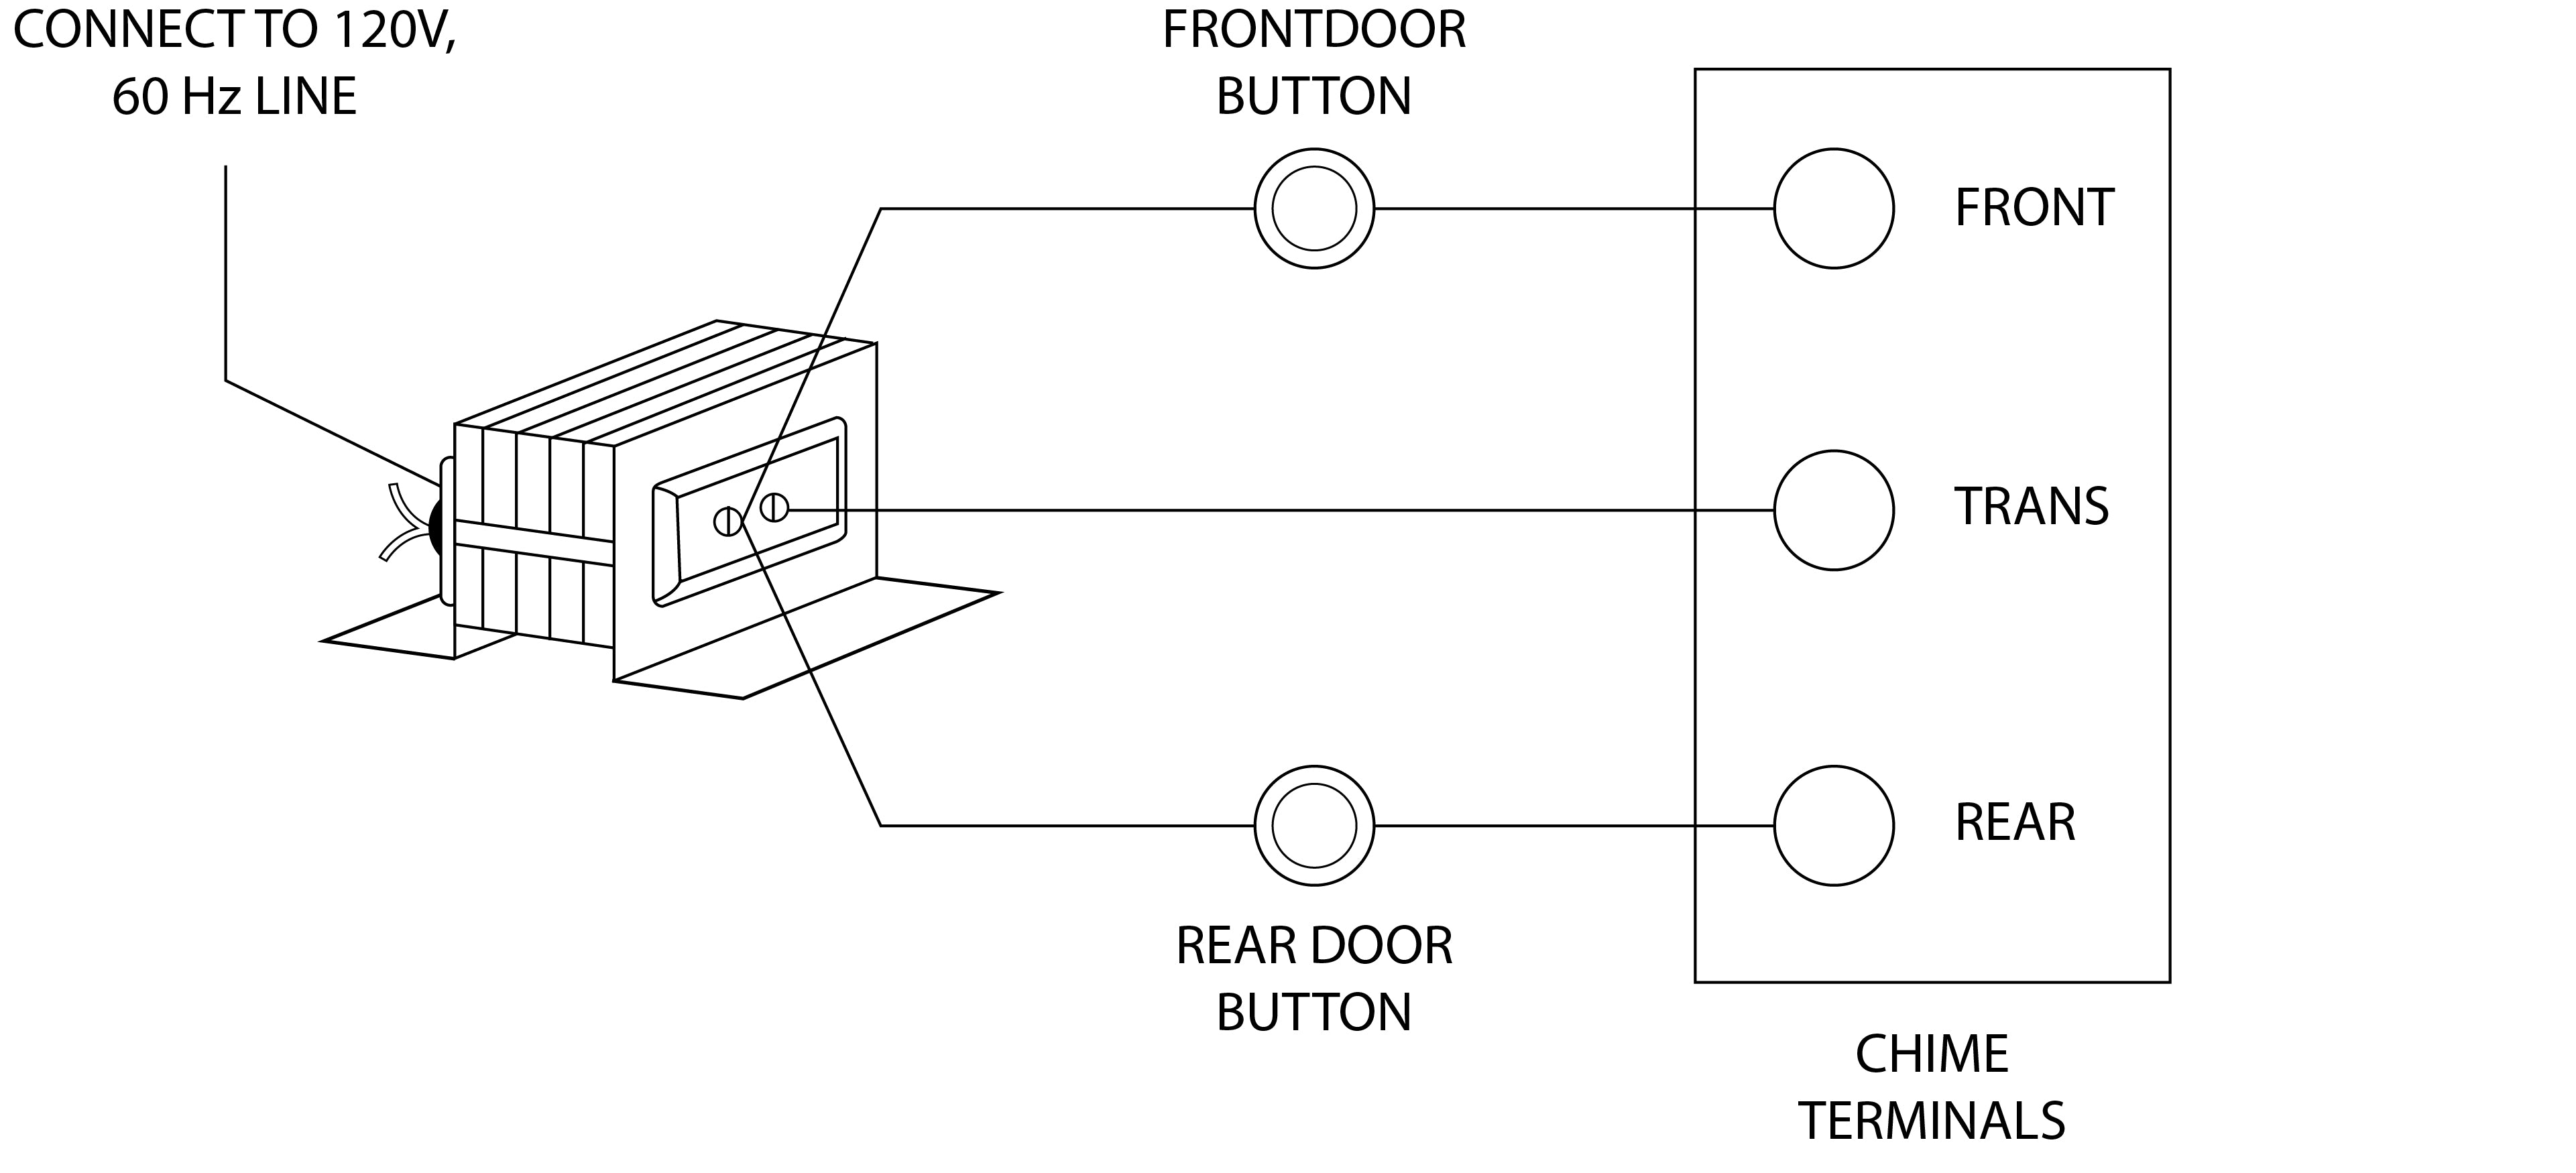 wiring diagram friedland doorbell wiring diagram doorbell schematic diagram Basic Electrical Wiring Diagrams at couponss.co